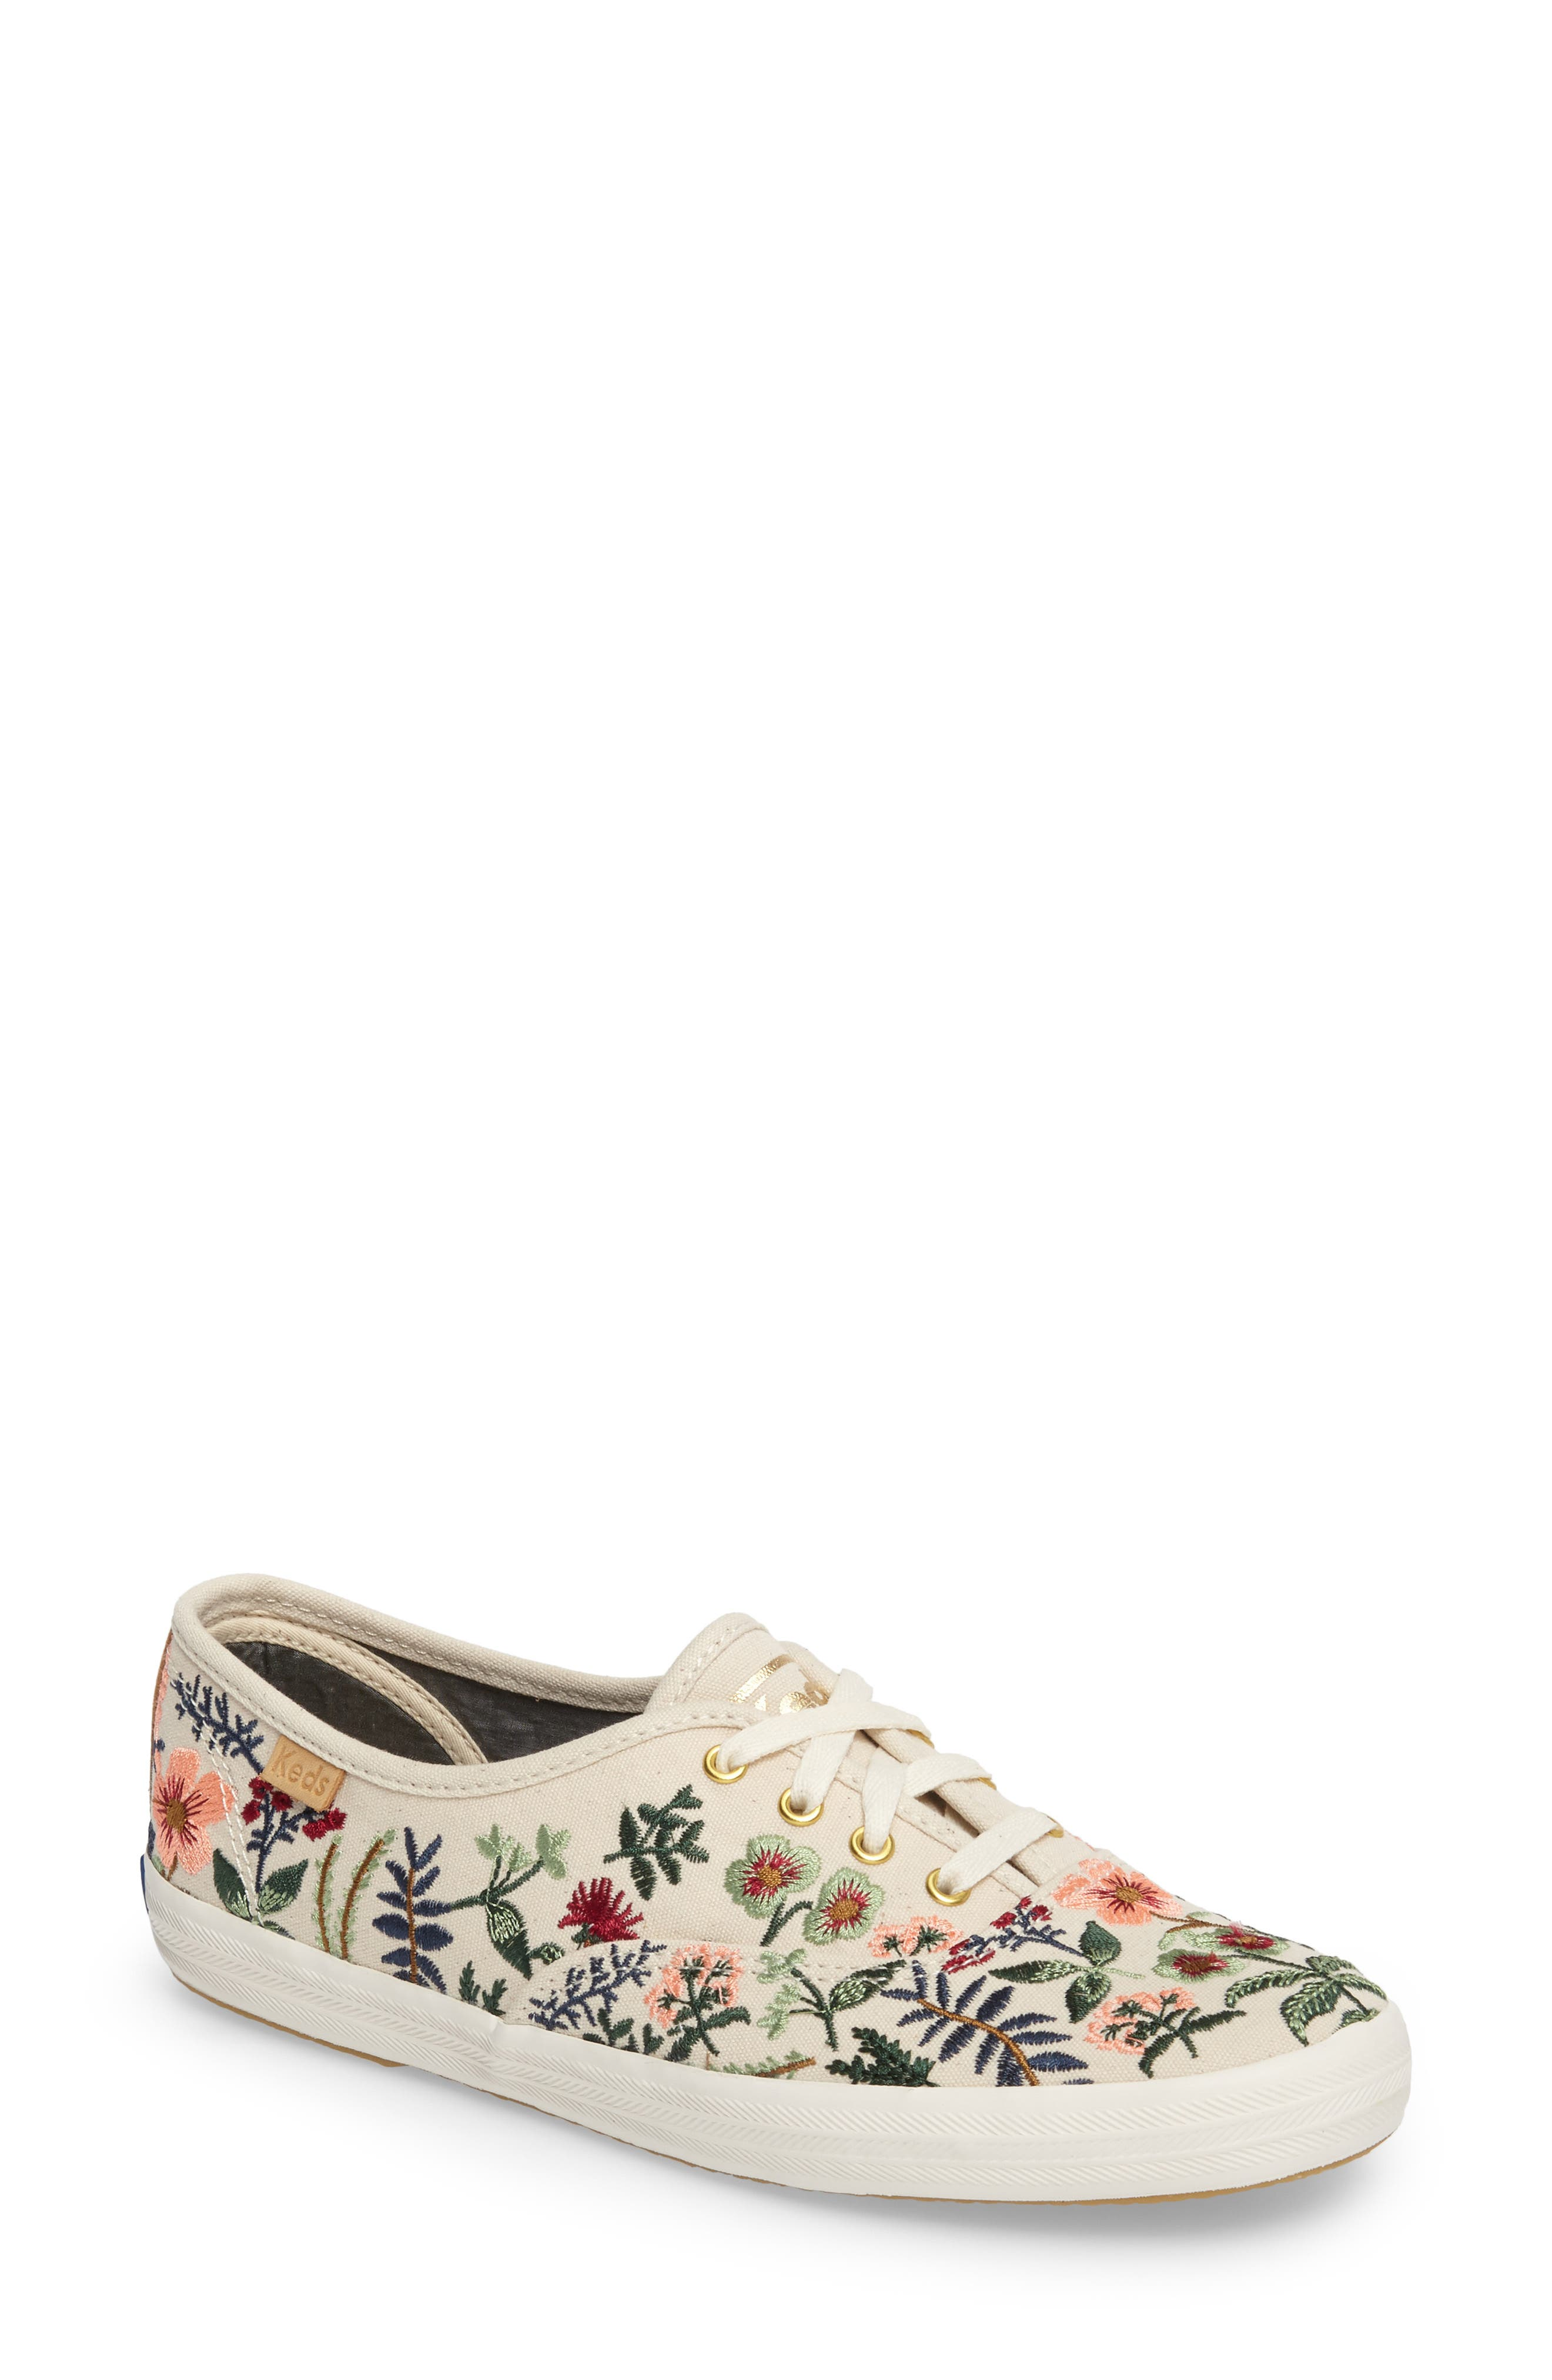 x Rifle Paper Co. Herb Garden Embroidered Sneaker,                         Main,                         color, 101